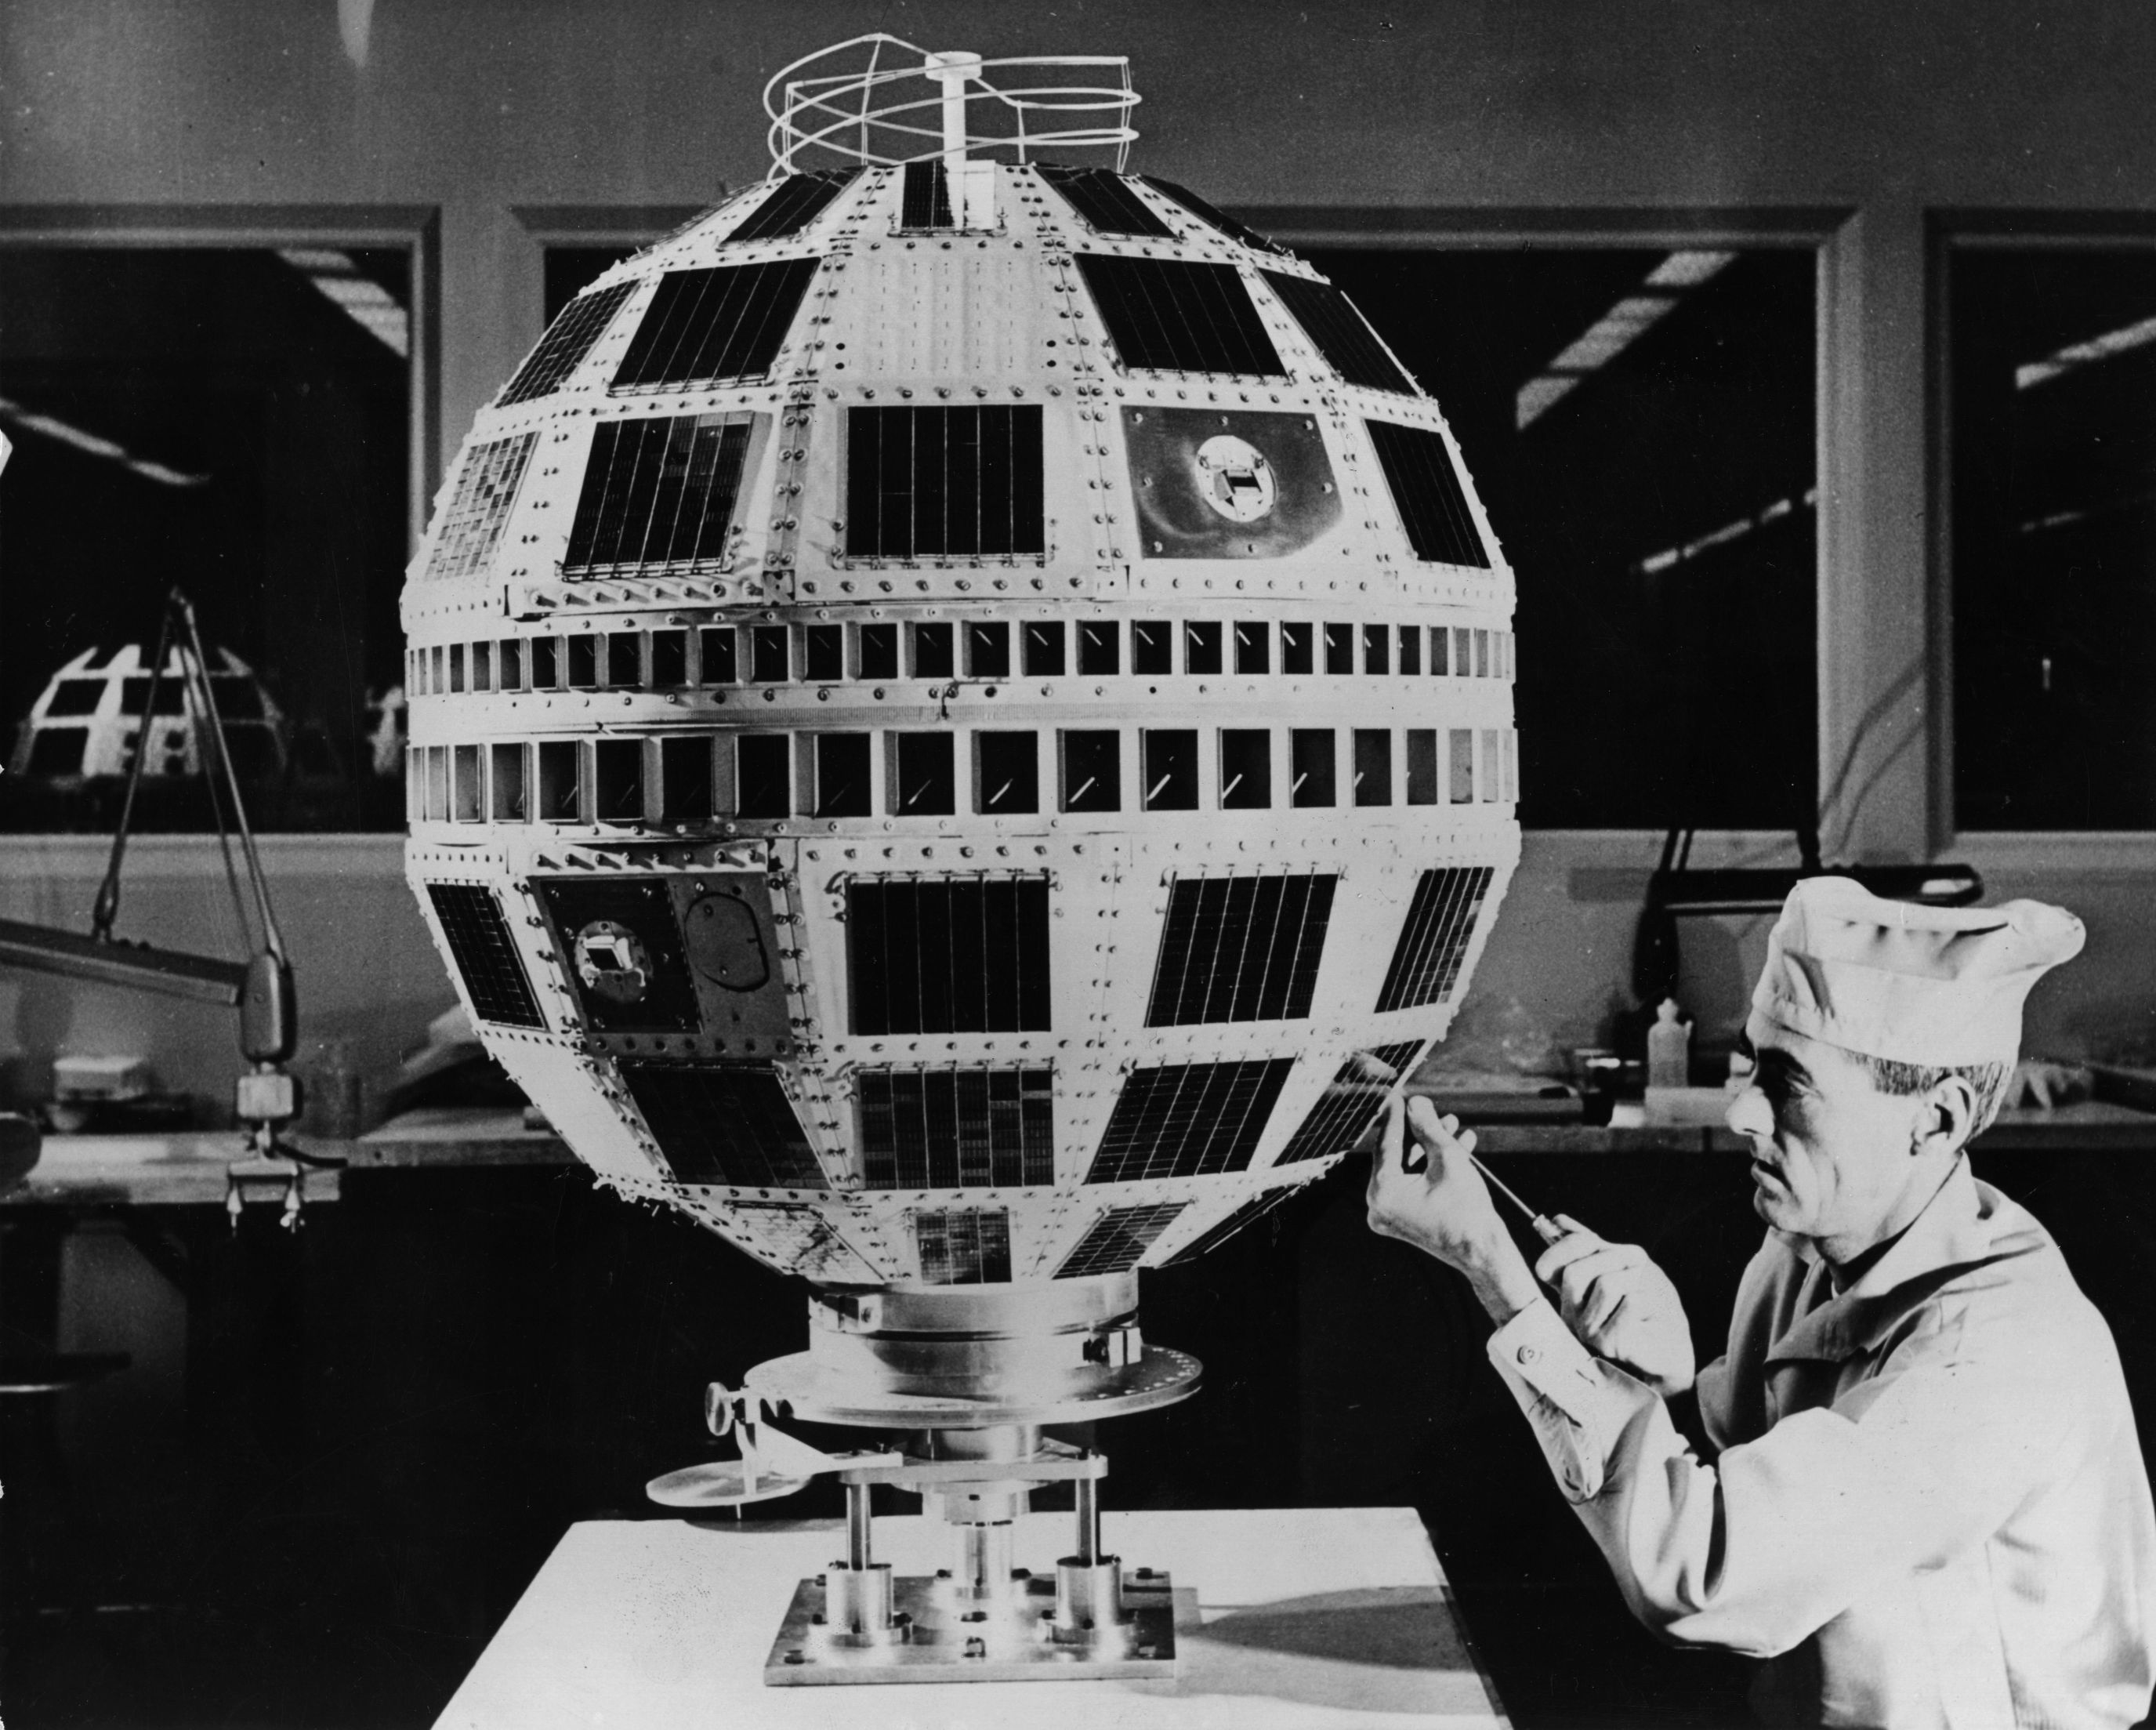 An engineer at work on a Project Telstar active communication satellite, in a surgically clean environment at the Bell Telephone Laboratory, New Jersey.   (Photo by Fox Photos/Getty Images)